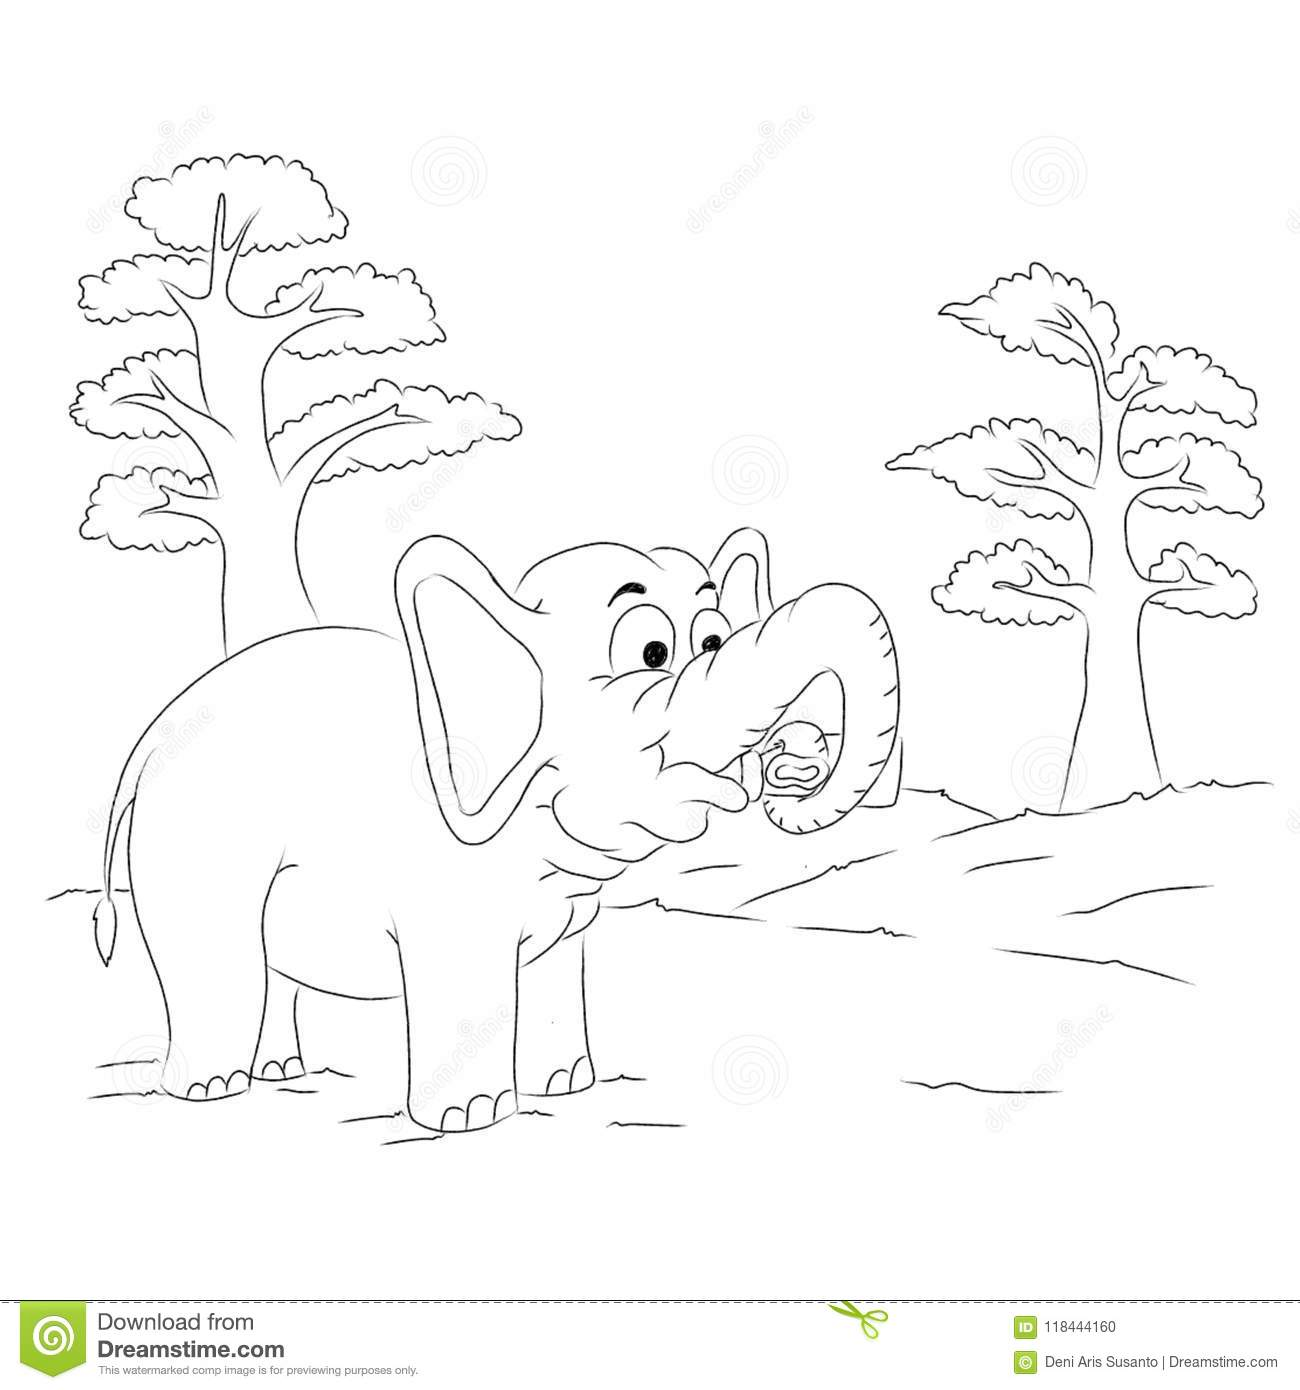 Elephant Outline Cartoon Colouring Page Stock Illustration ...